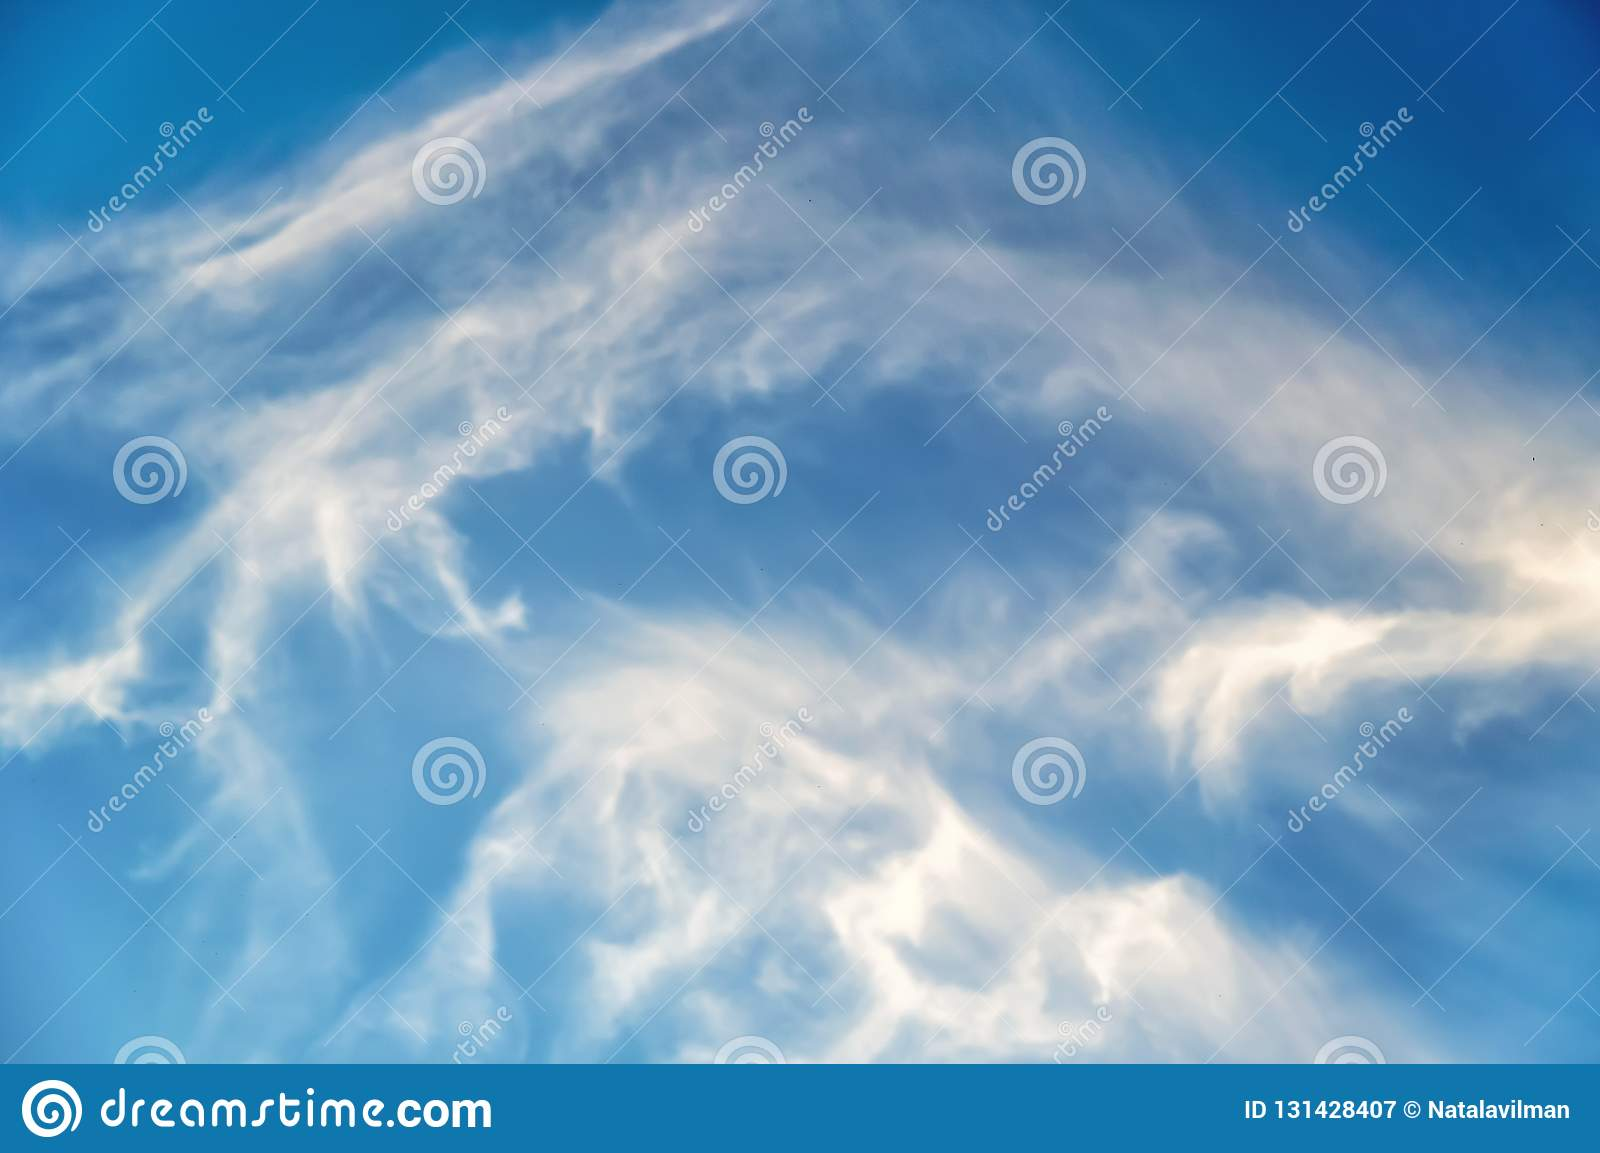 White clouds in the blue sky. Beautiful background